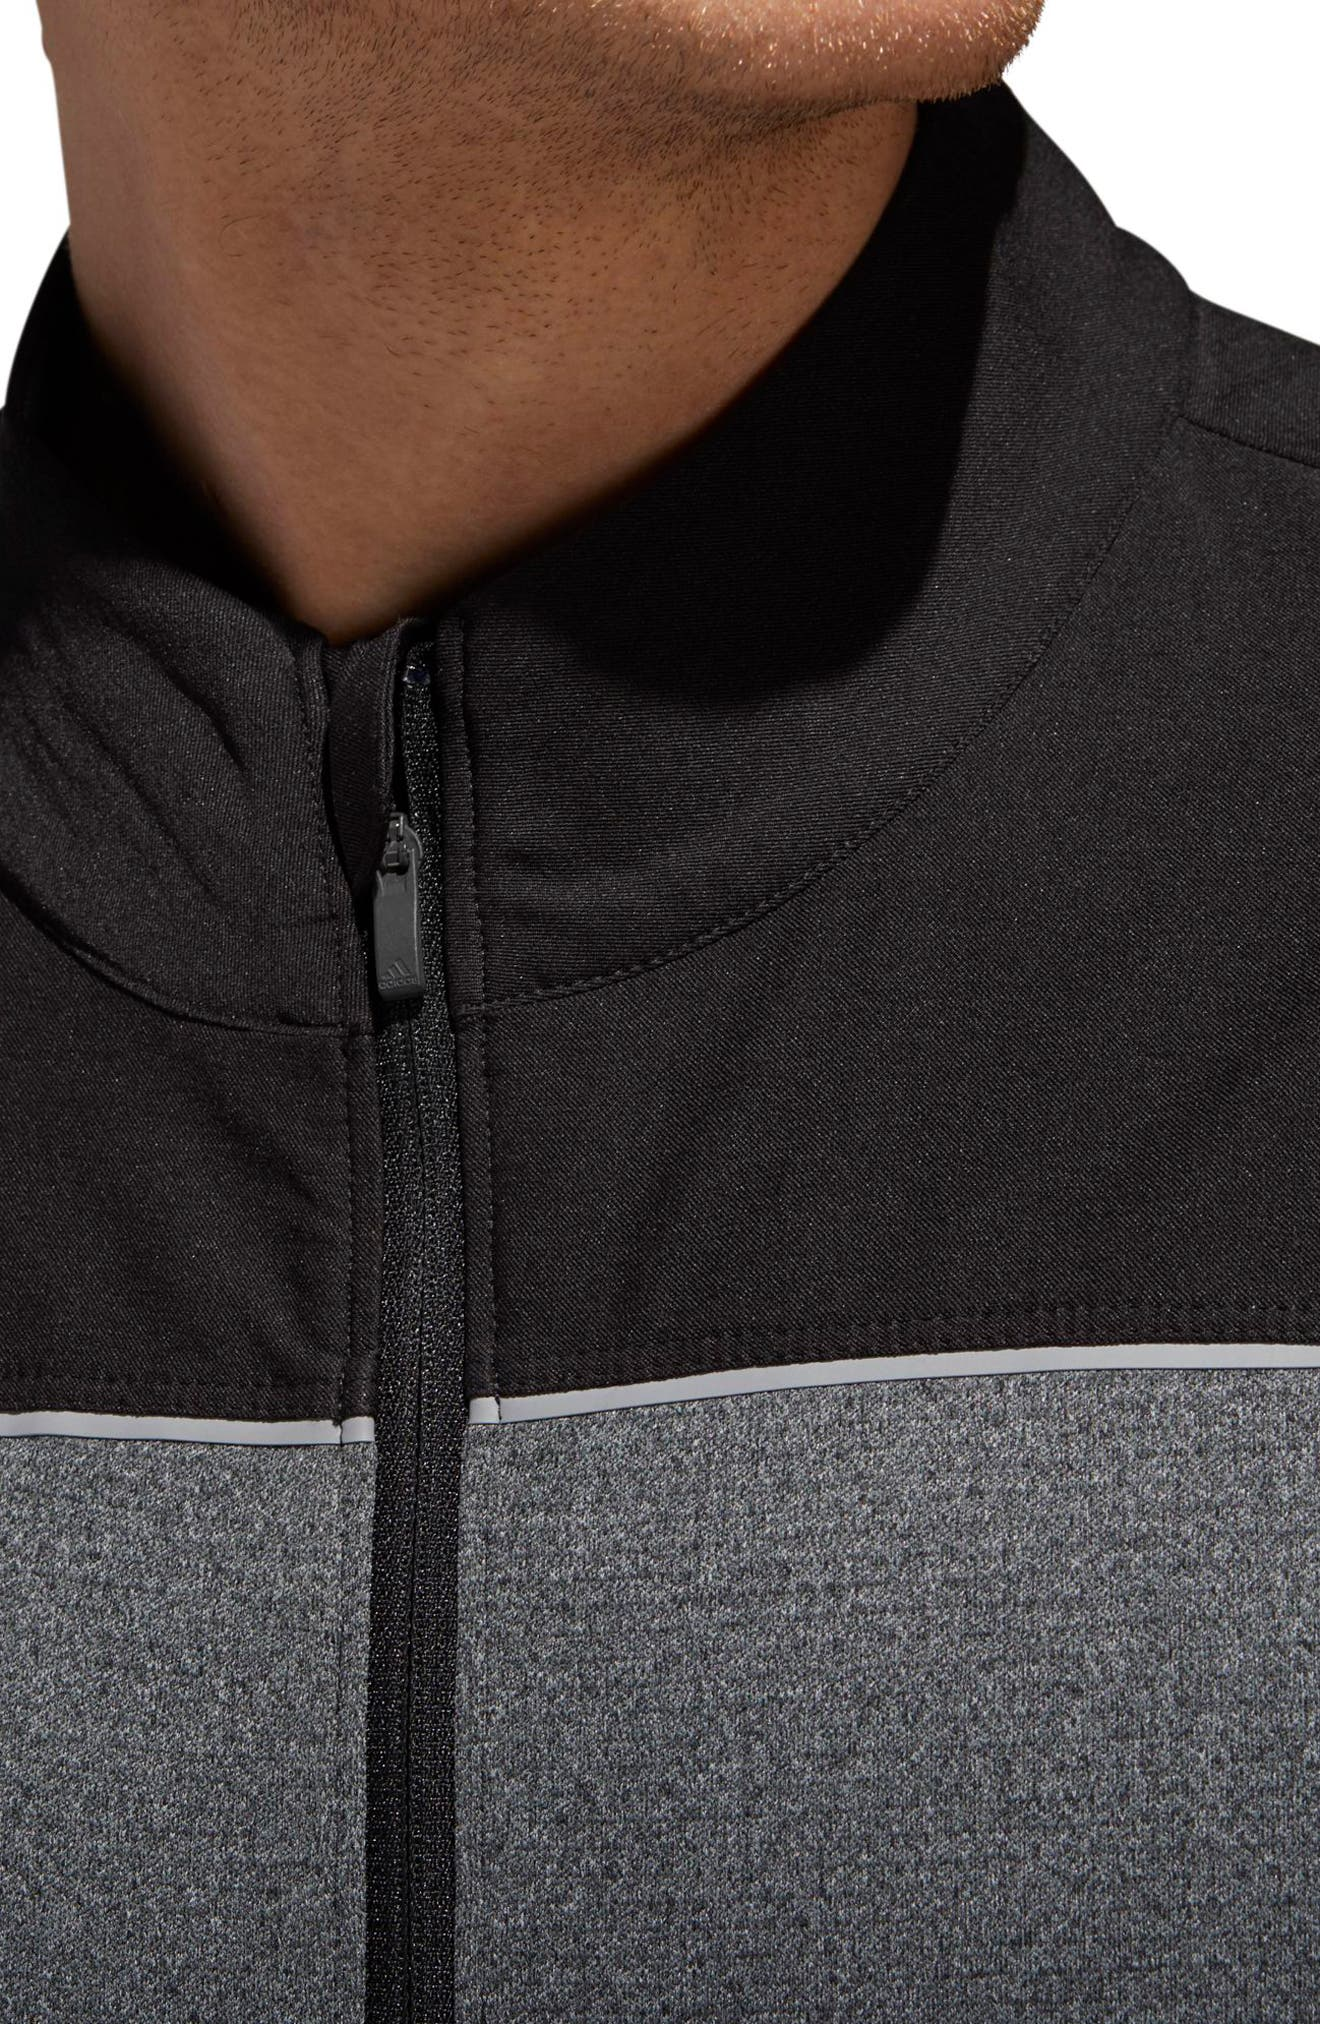 Go-To Adapt Pullover,                             Alternate thumbnail 5, color,                             020